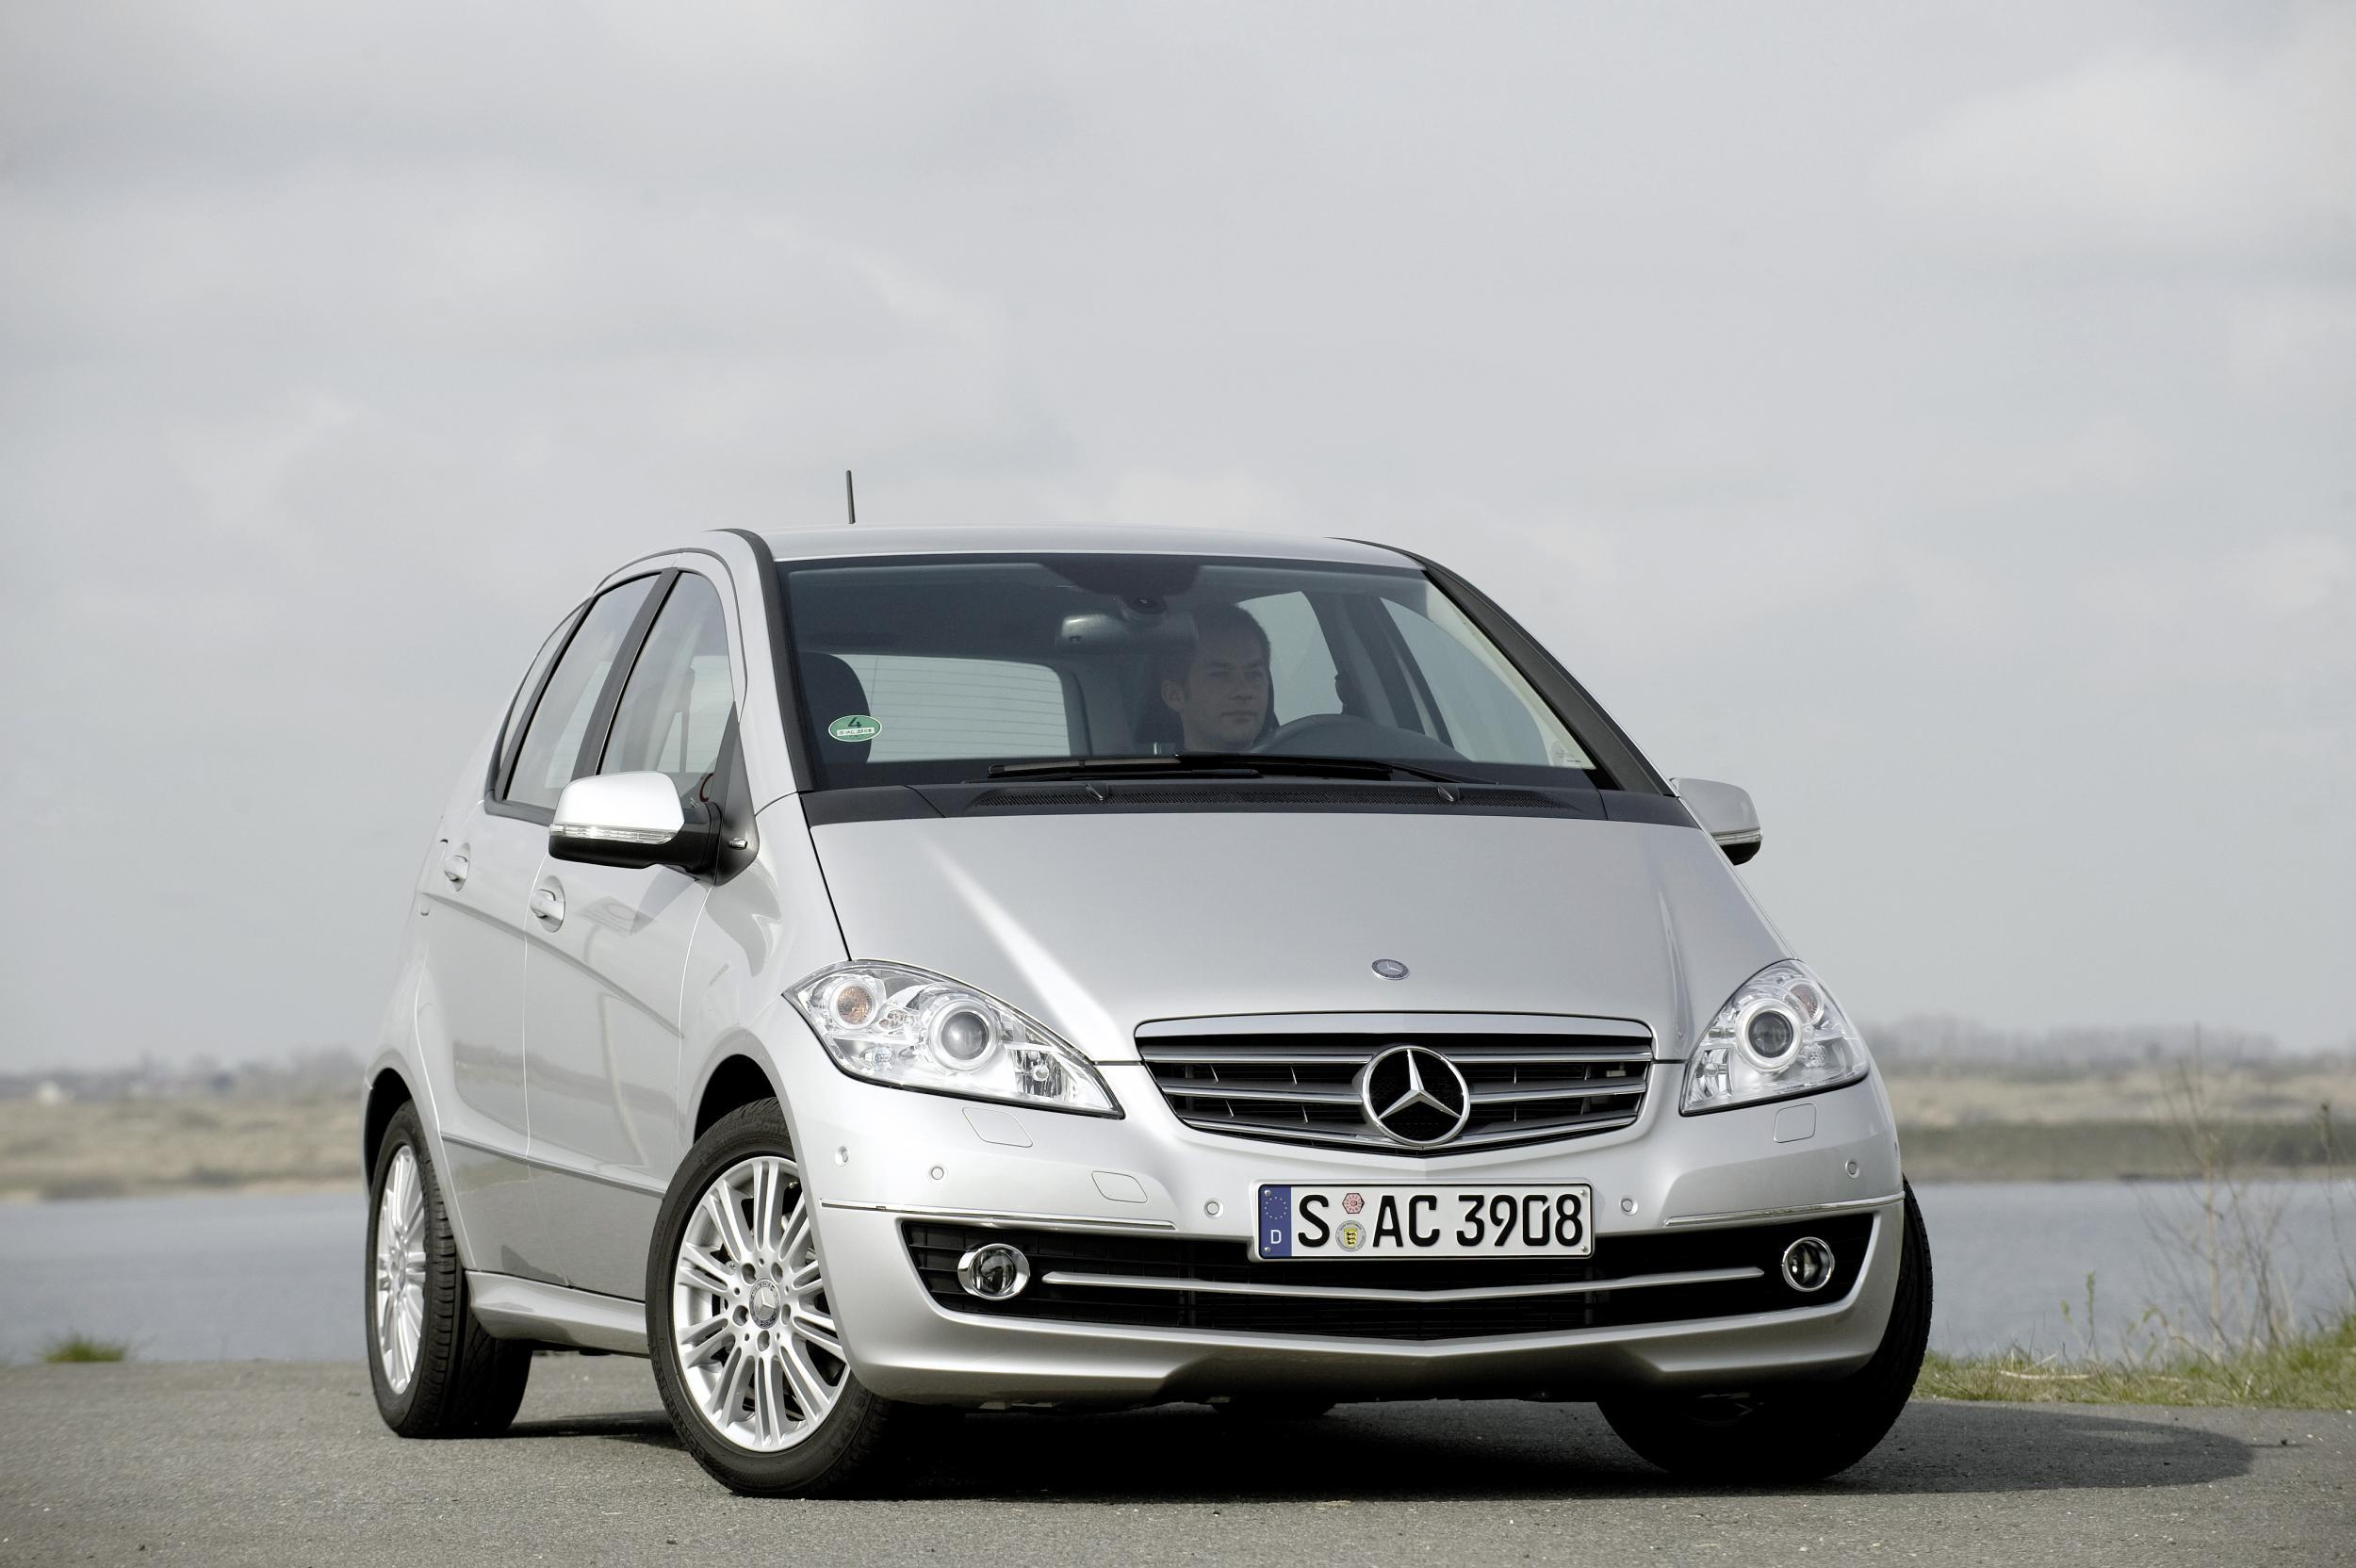 mercedes benz recalls 400 000 cars over airbag fault the. Black Bedroom Furniture Sets. Home Design Ideas